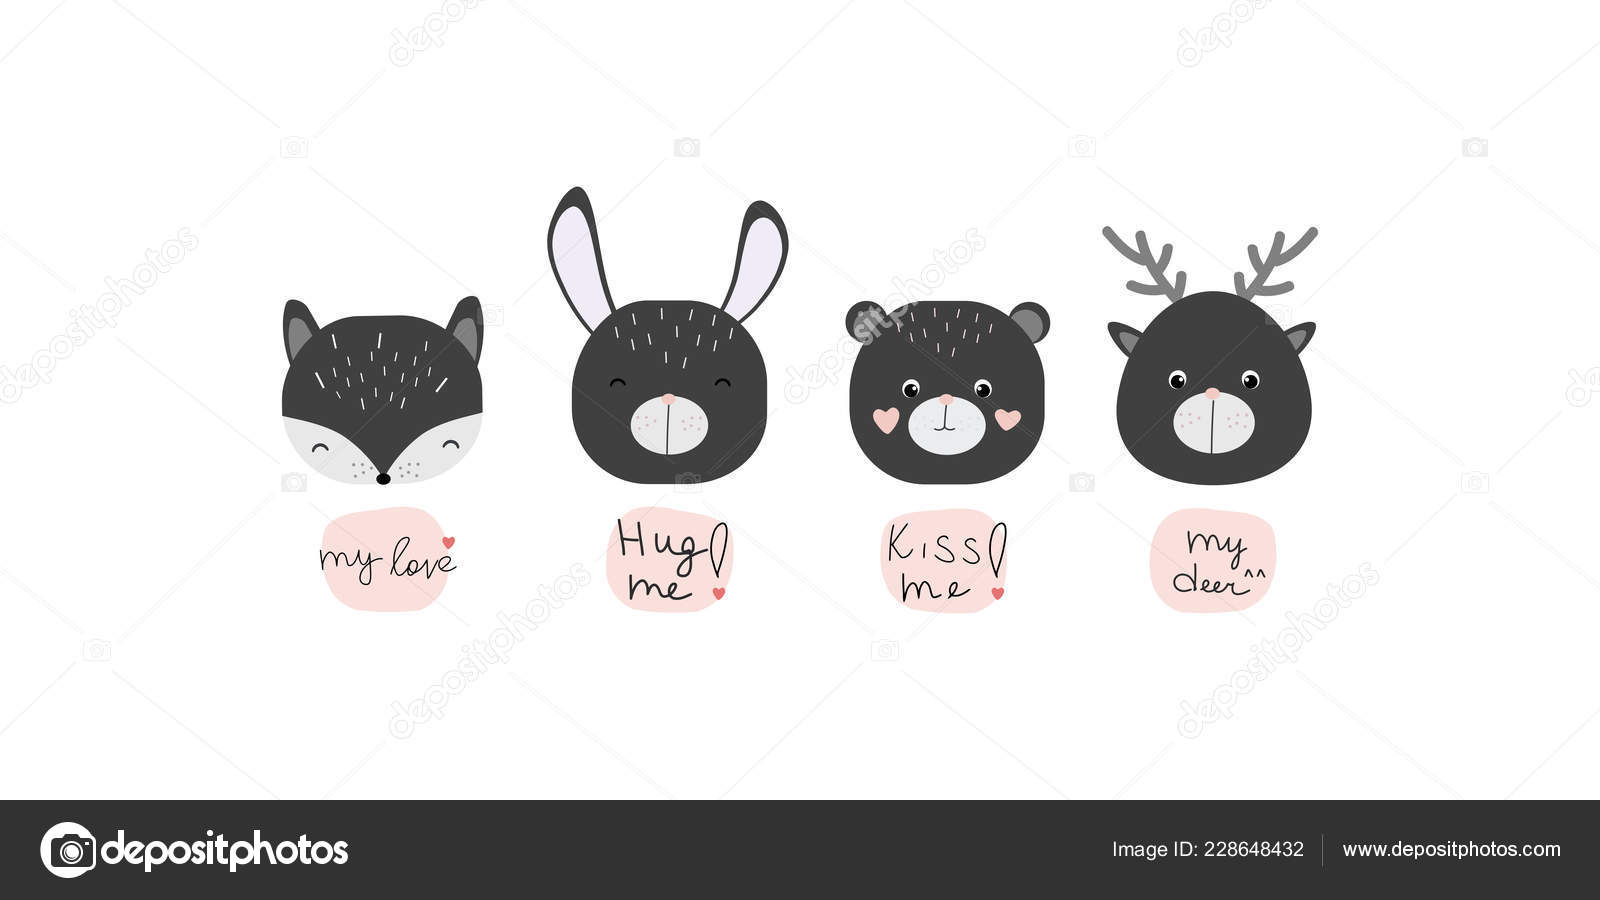 Pictures Cute Animals With Sayings Vector Illustration Cute Kawaii Animals Phrases Perfect Baby Shower Greeting Stock Vector C Owainphyfe 228648432